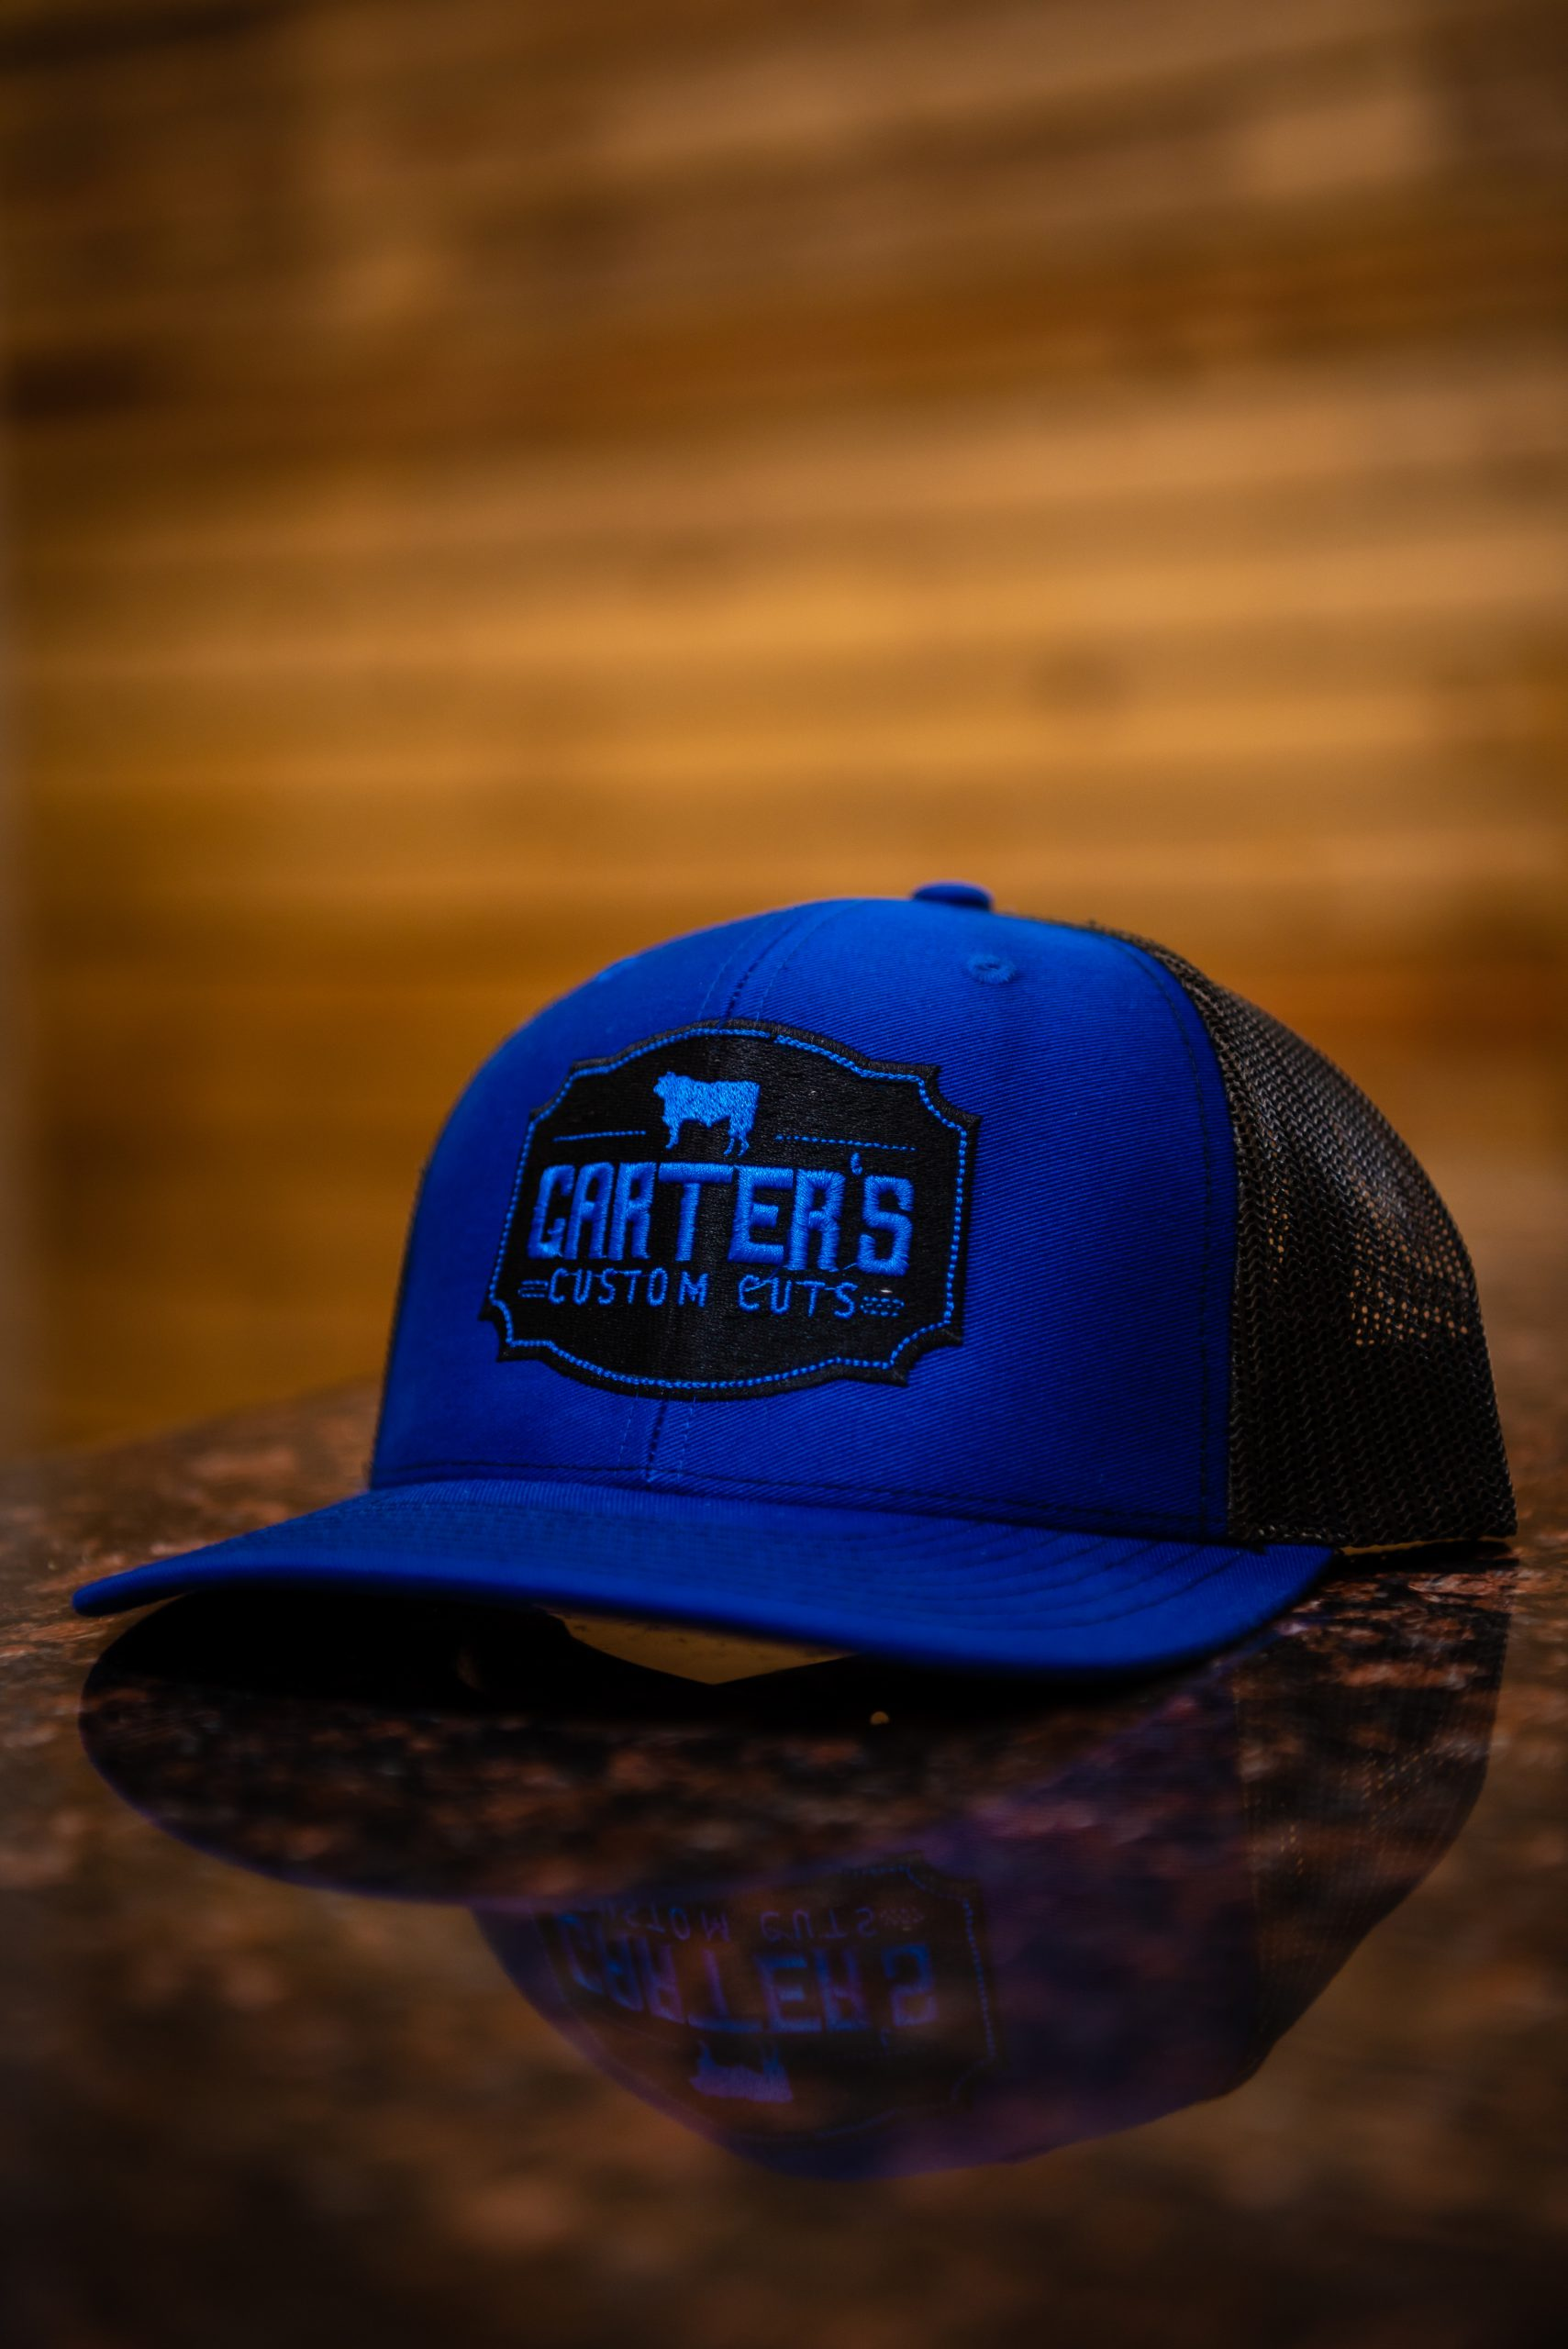 carters-custom-cuts-11_43447401775_o